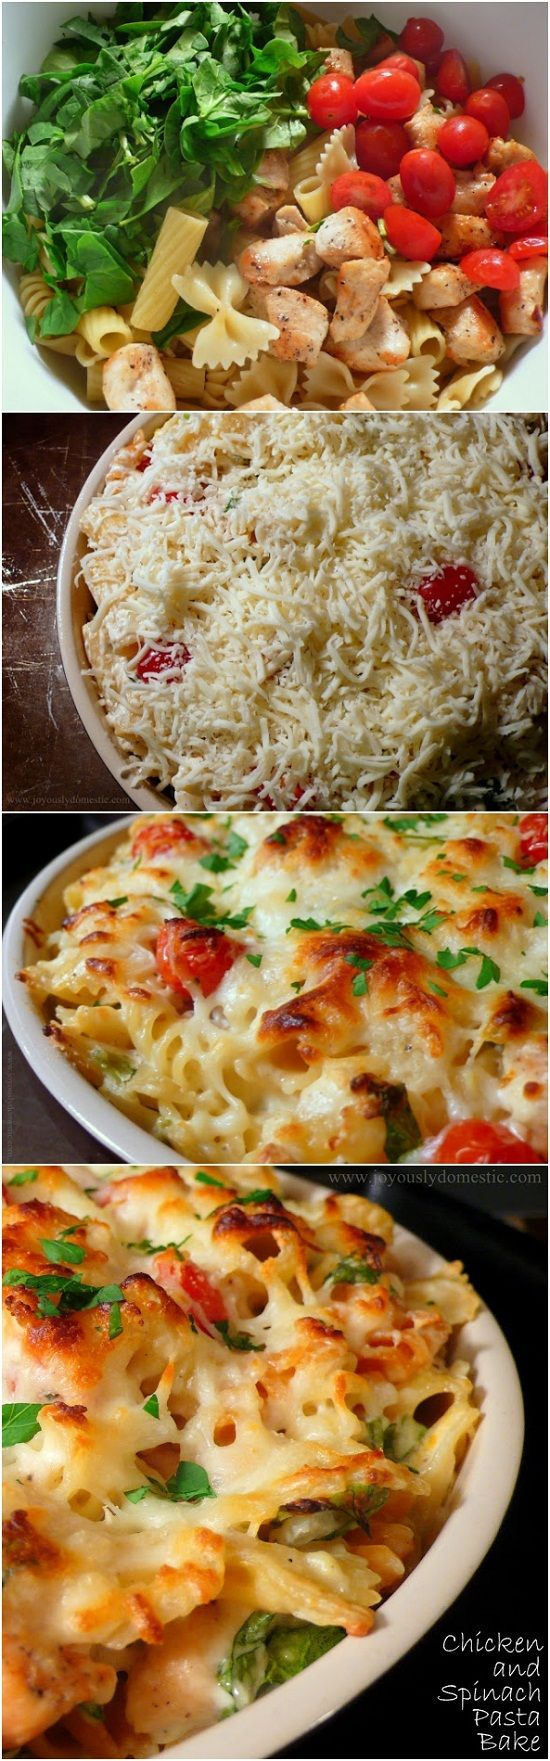 Chicken and Spinach Pasta Bake. This needs to happen in my kitchen asap! YUM!